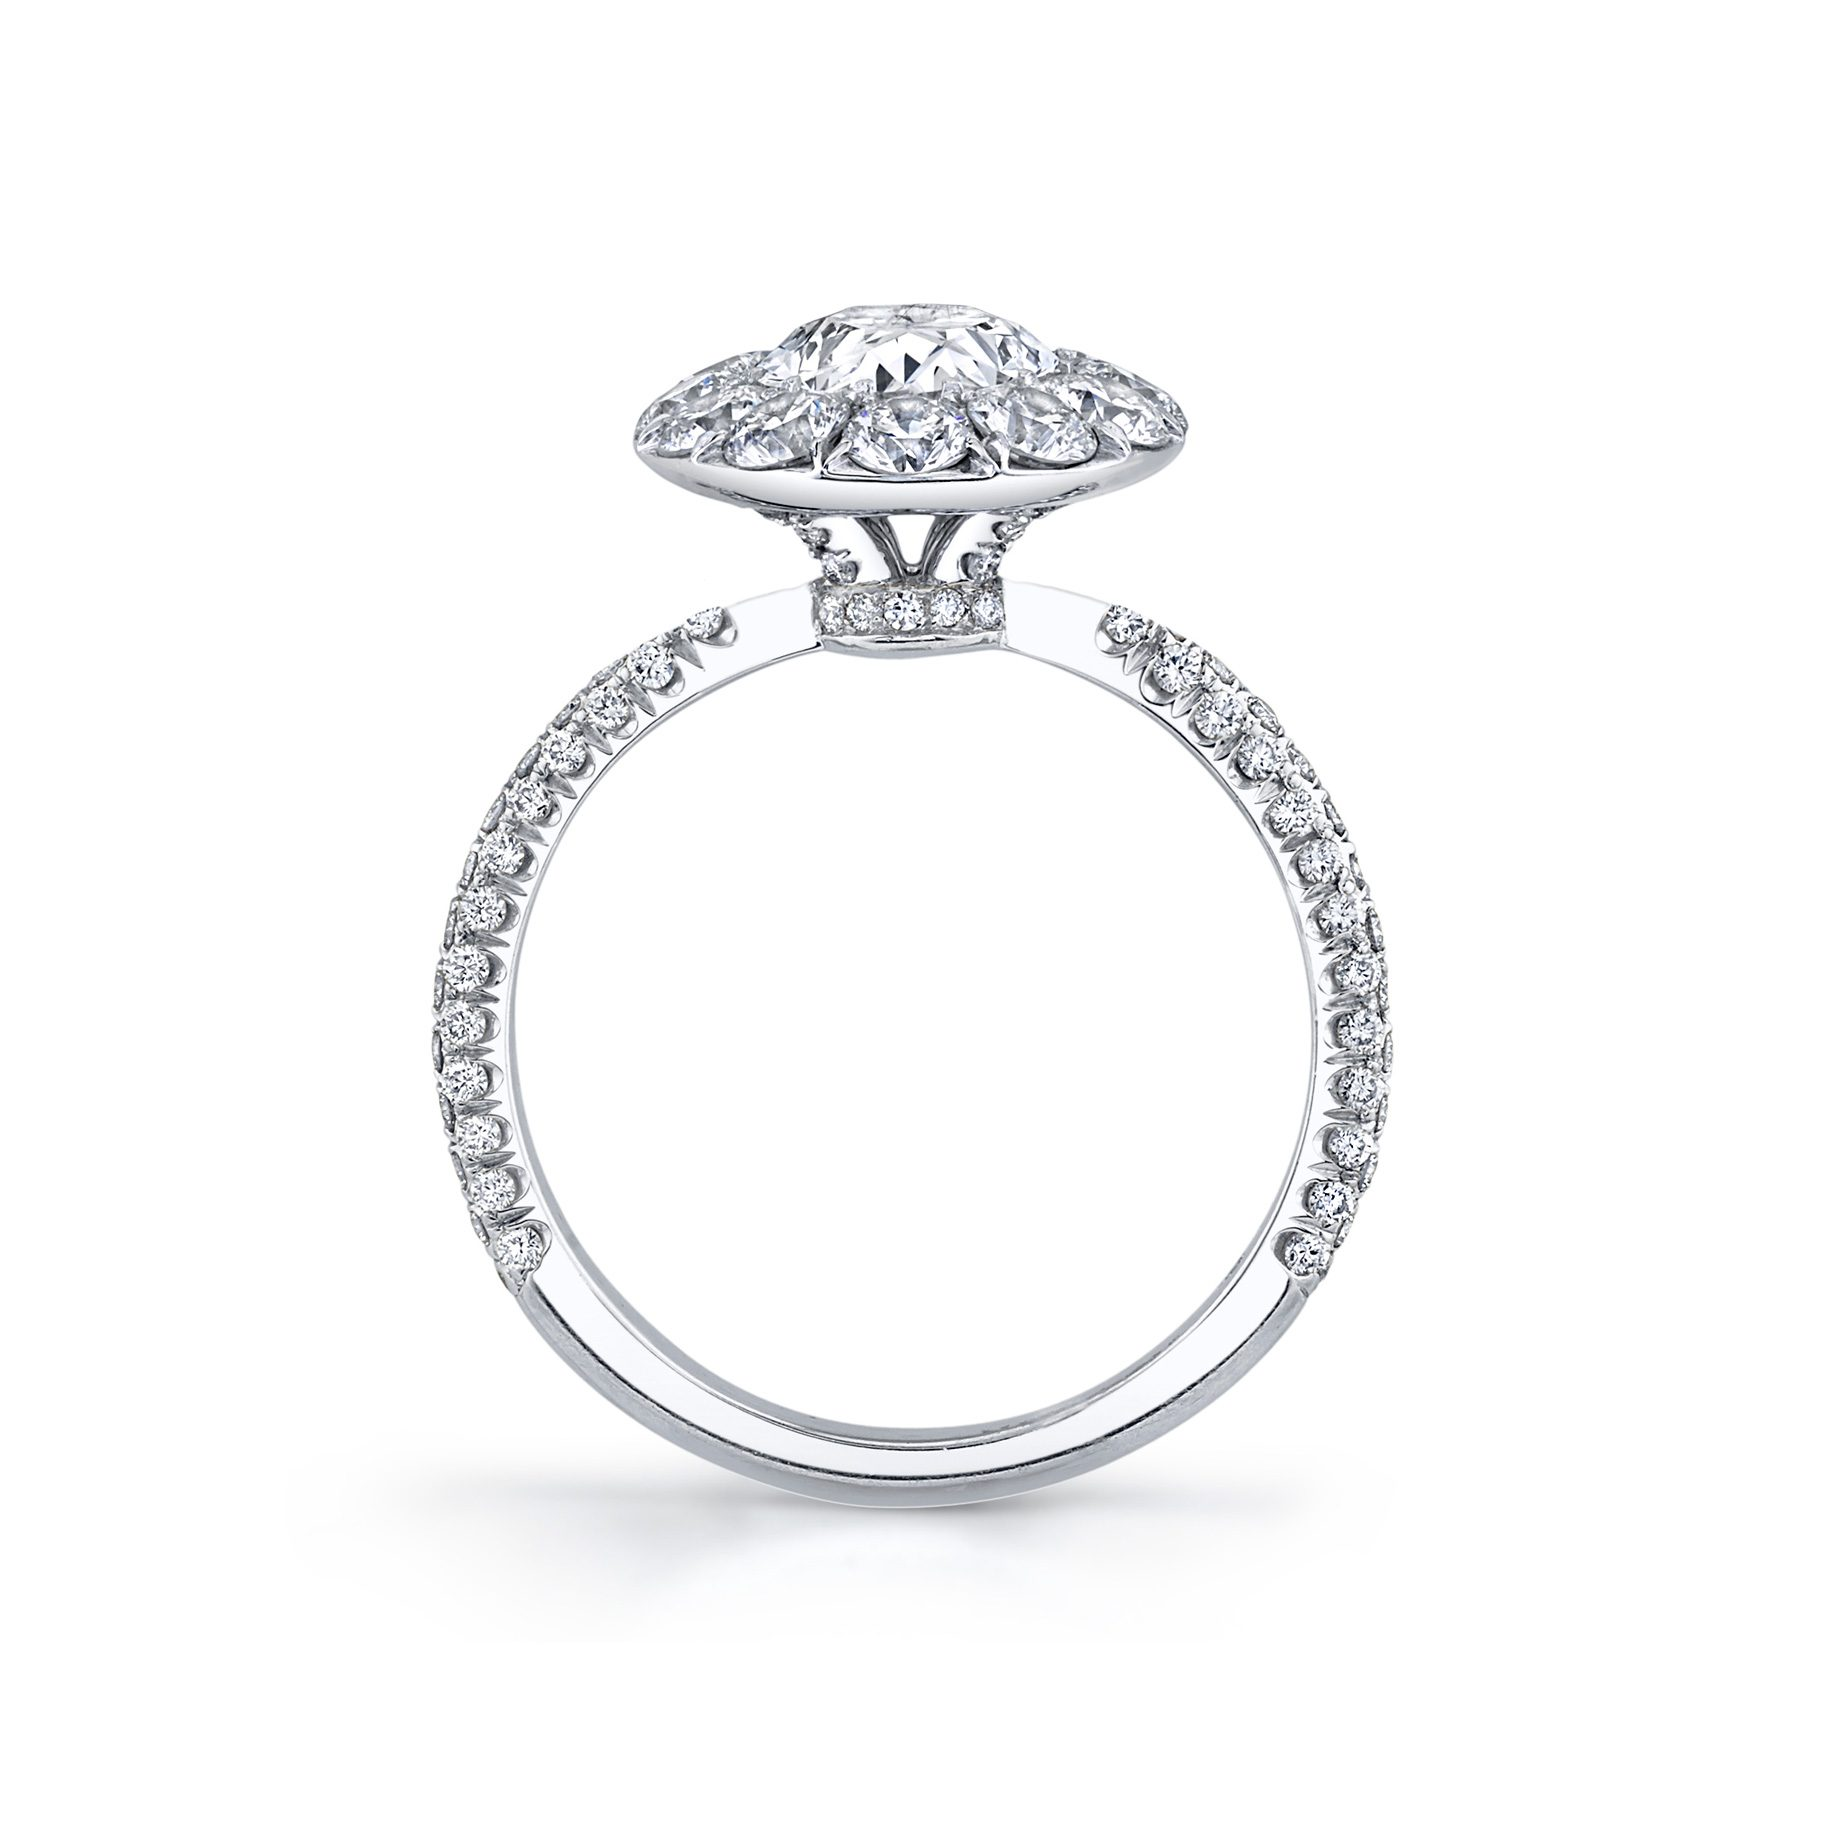 Jacqueline Floating Oval Seamless Solitaire® Engagement Ring with diamond pavé in 18k White Gold Standing View by Oui by Jean Dousset